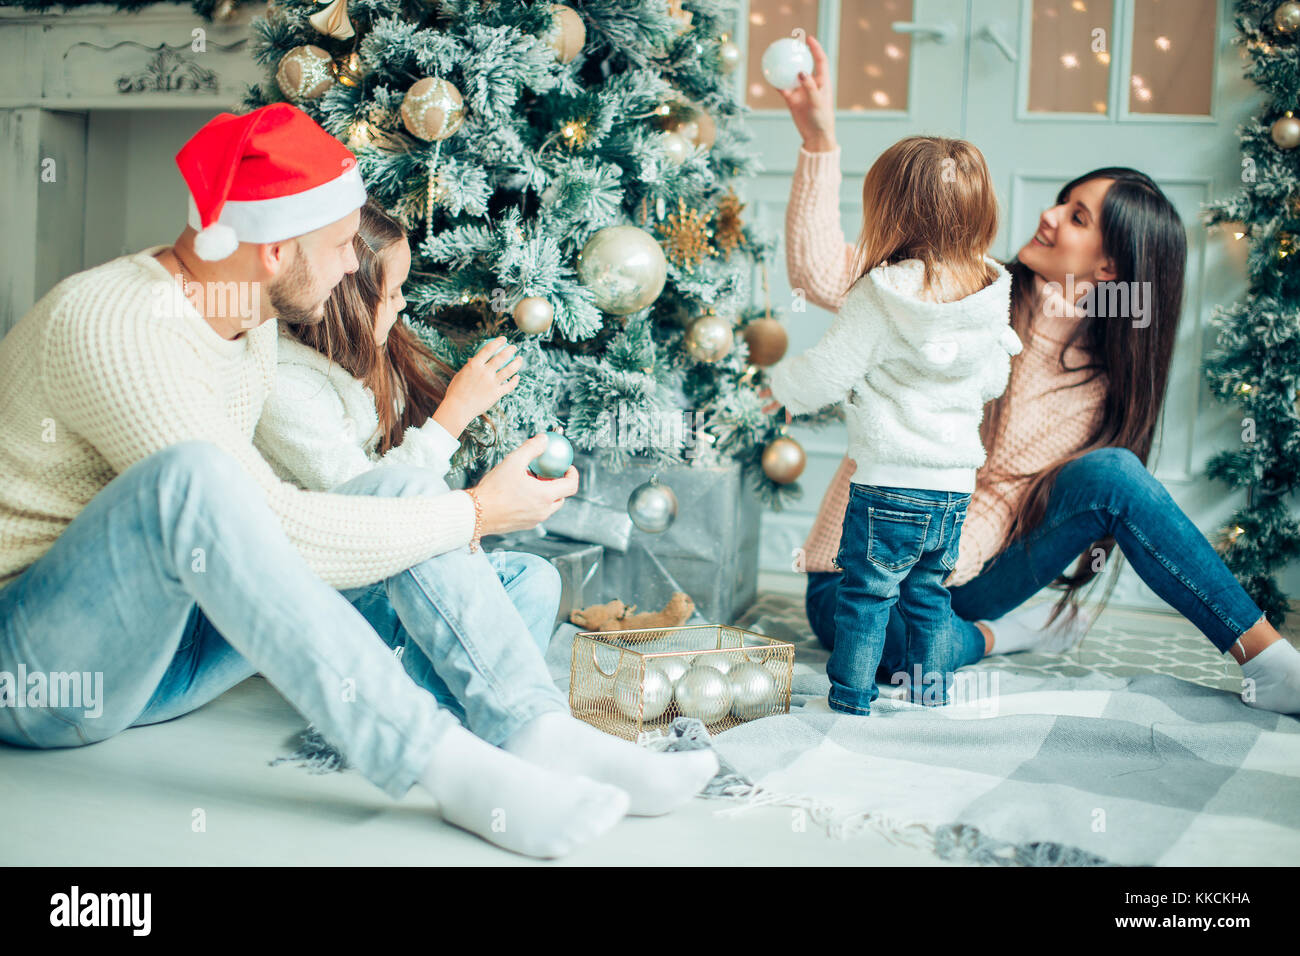 happy girl decorating Christmas tree.Family, christmas, ,happiness concept - Stock Image